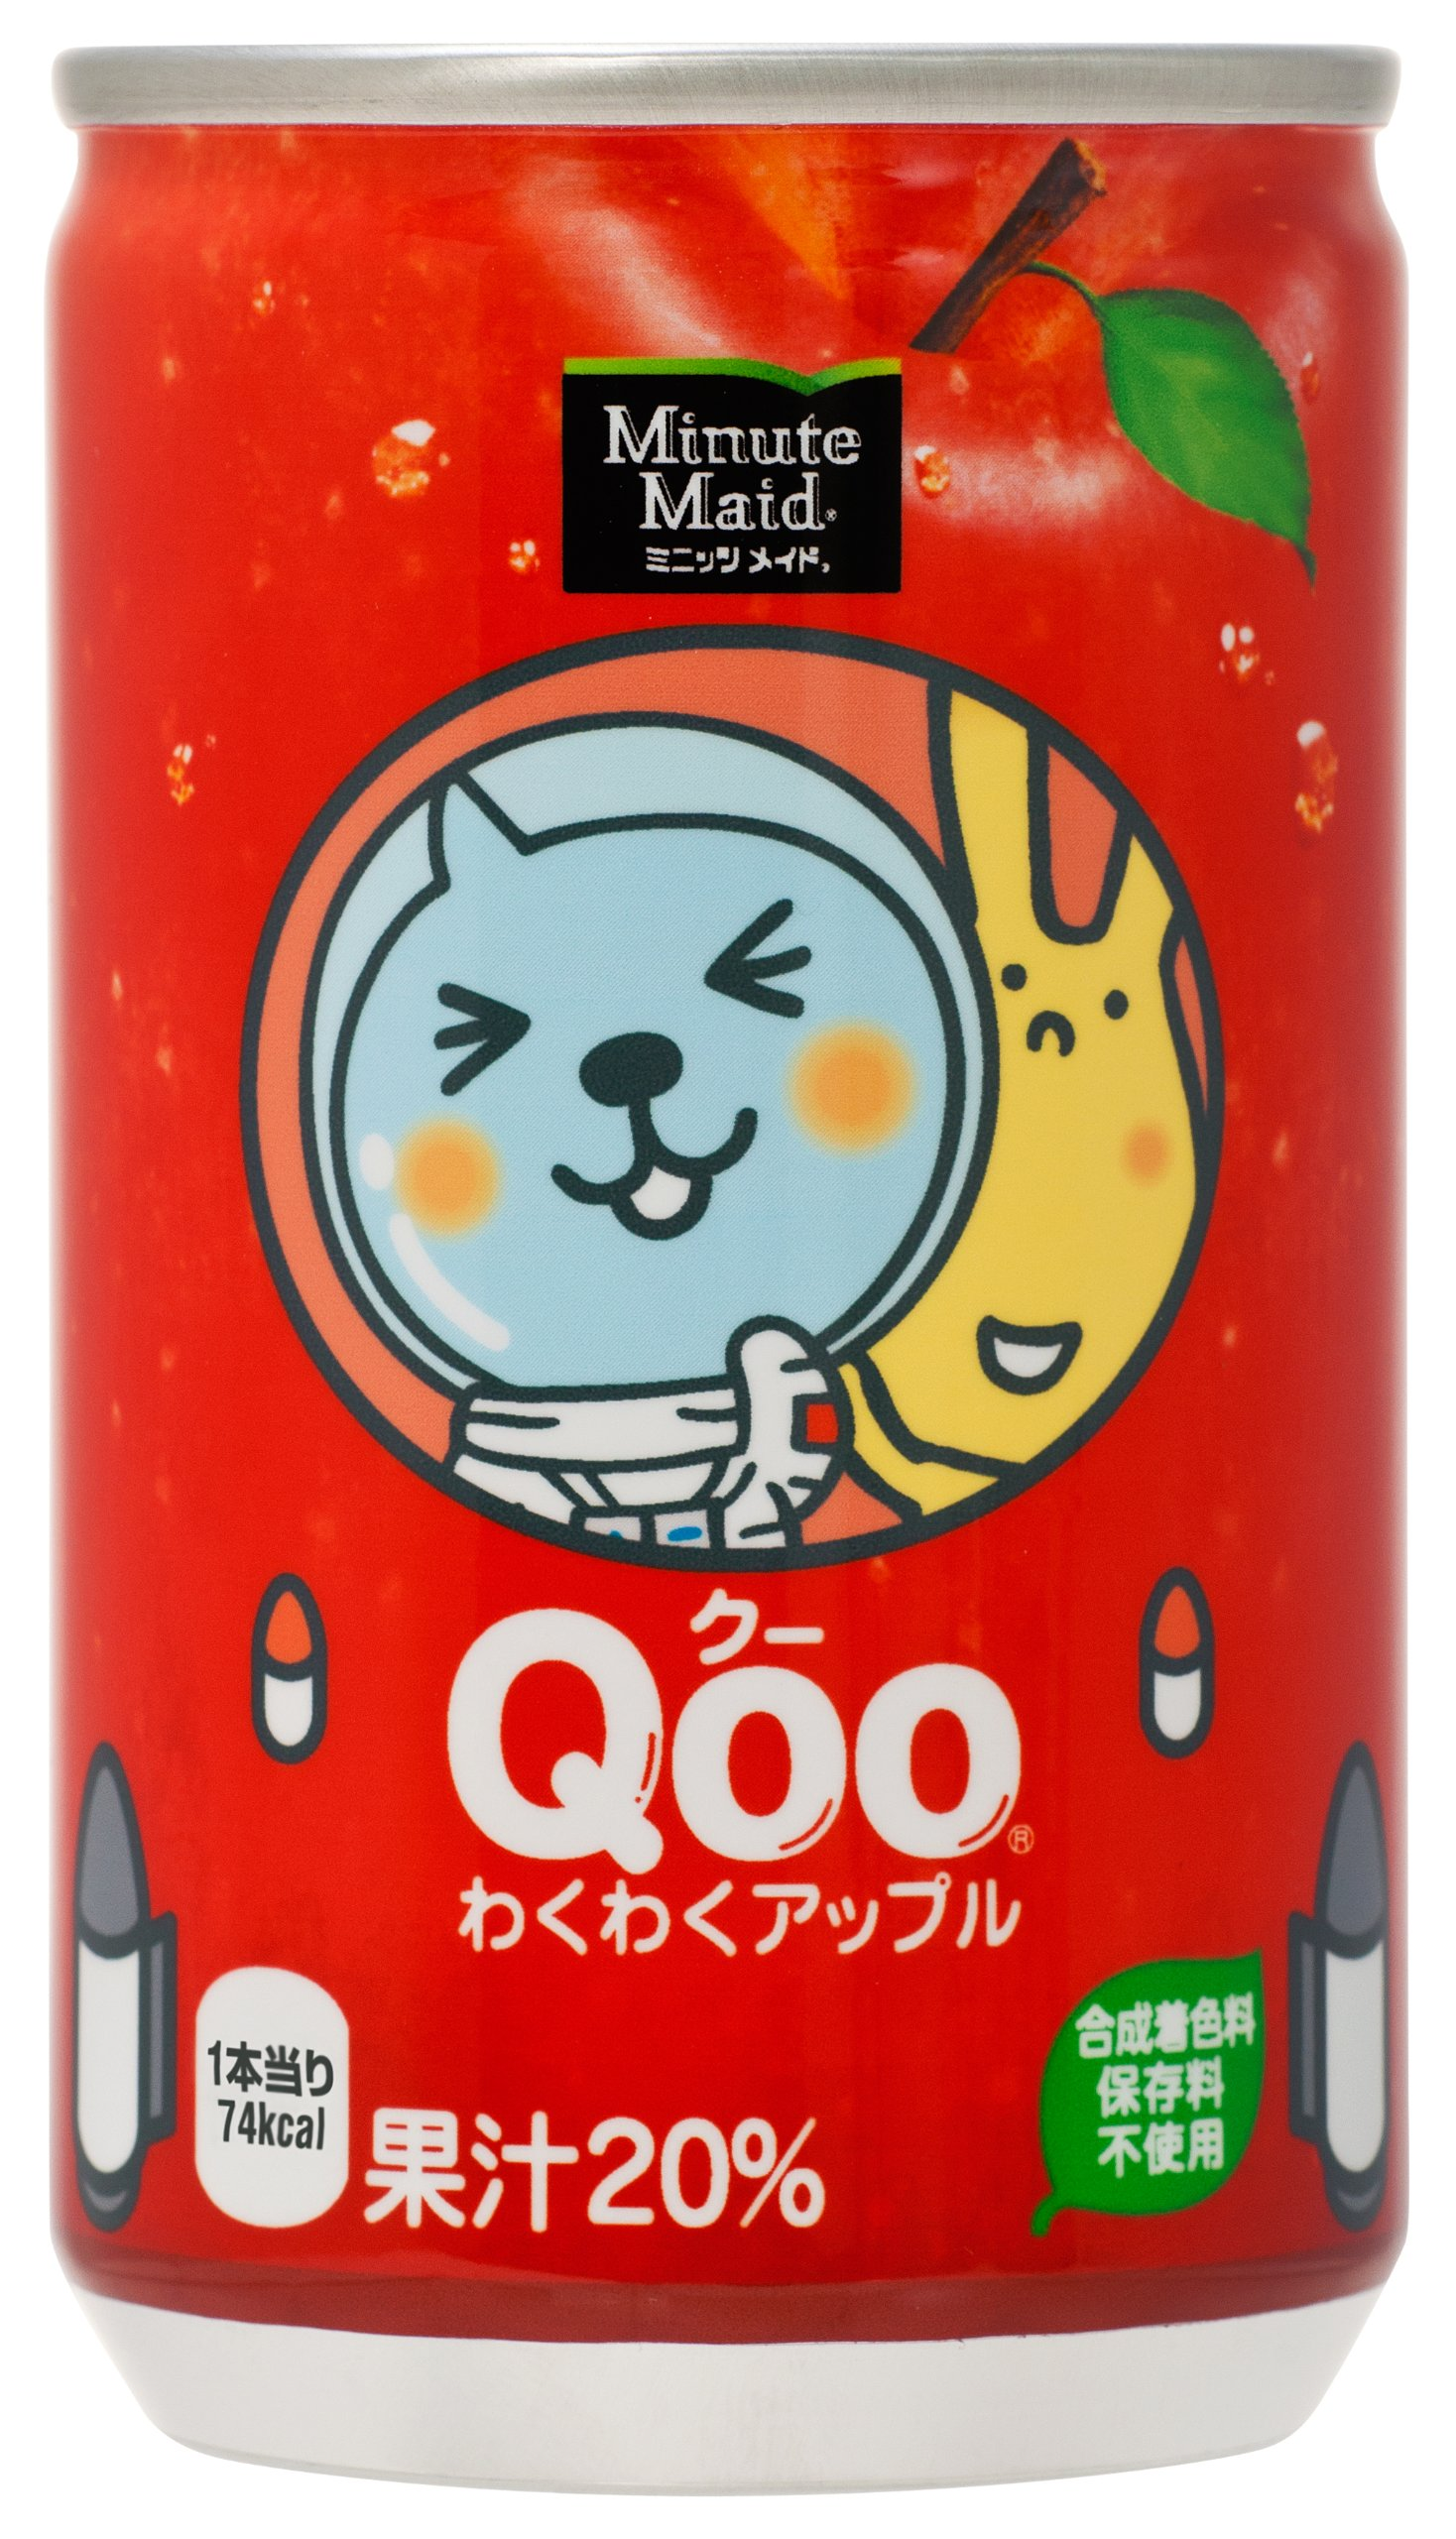 160gX30 this Coca-Cola Minute Maid Qoo excited about Apple